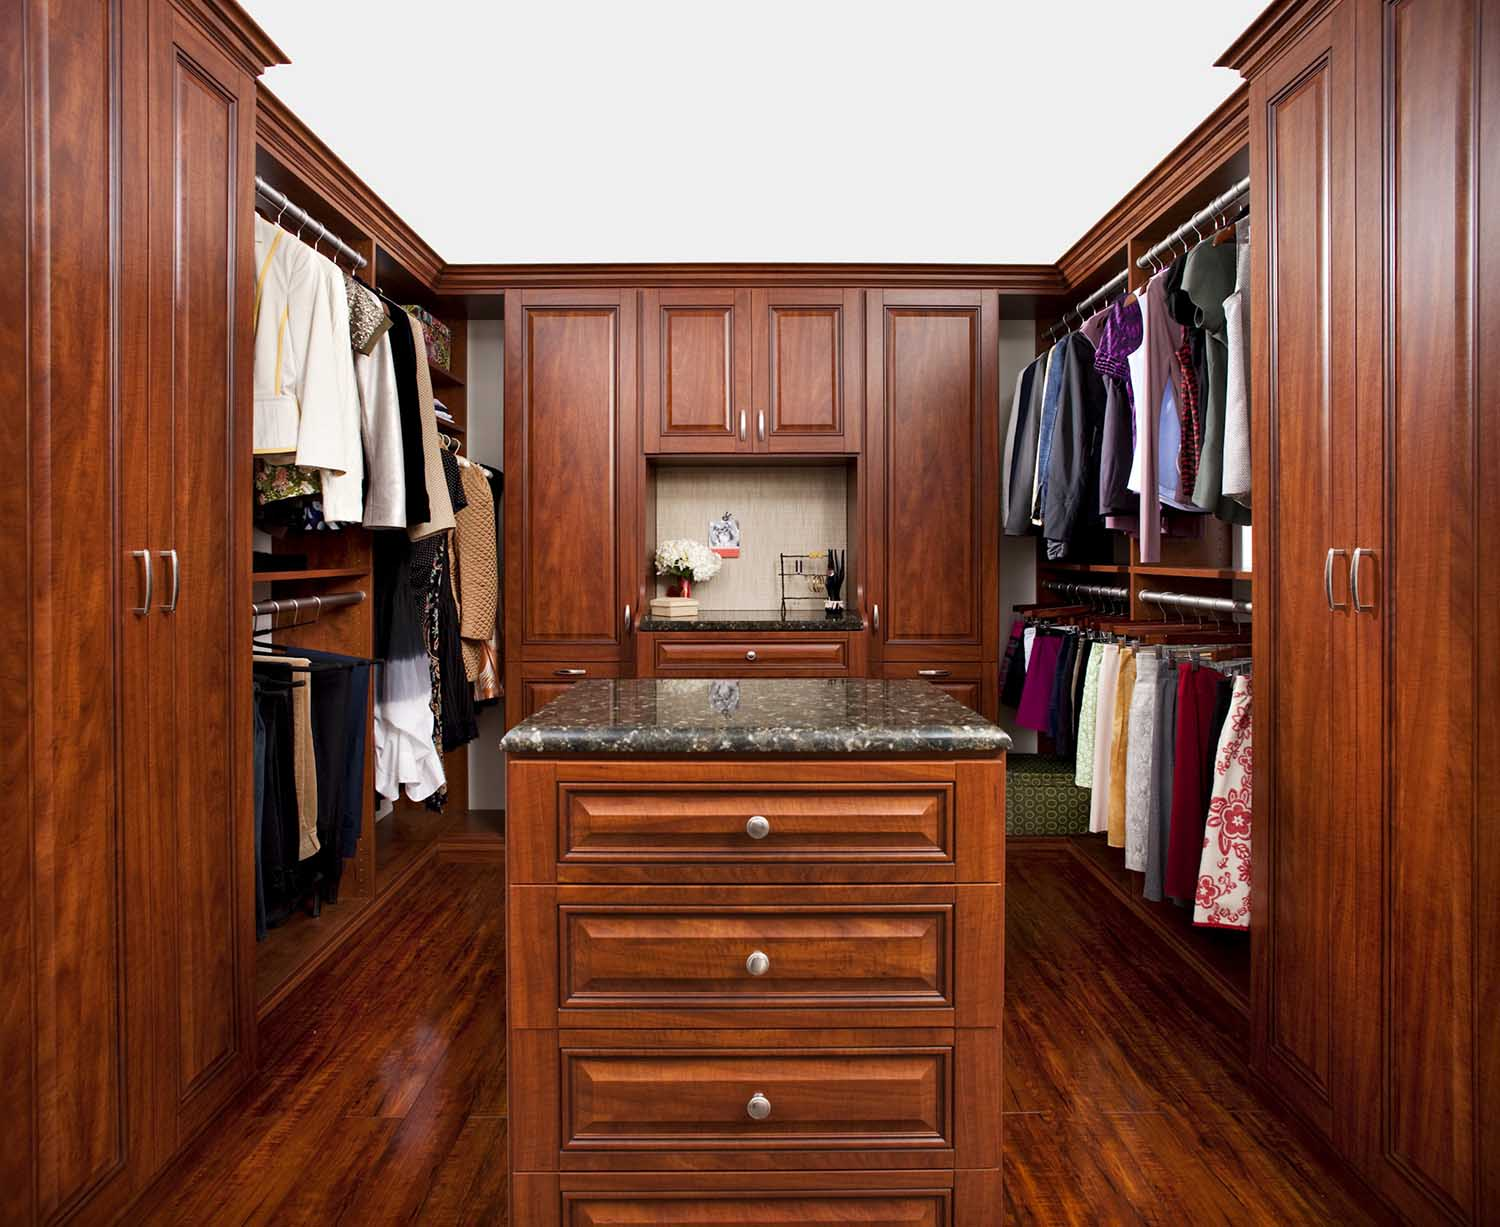 Her customized walk-in closet with double hanging rods